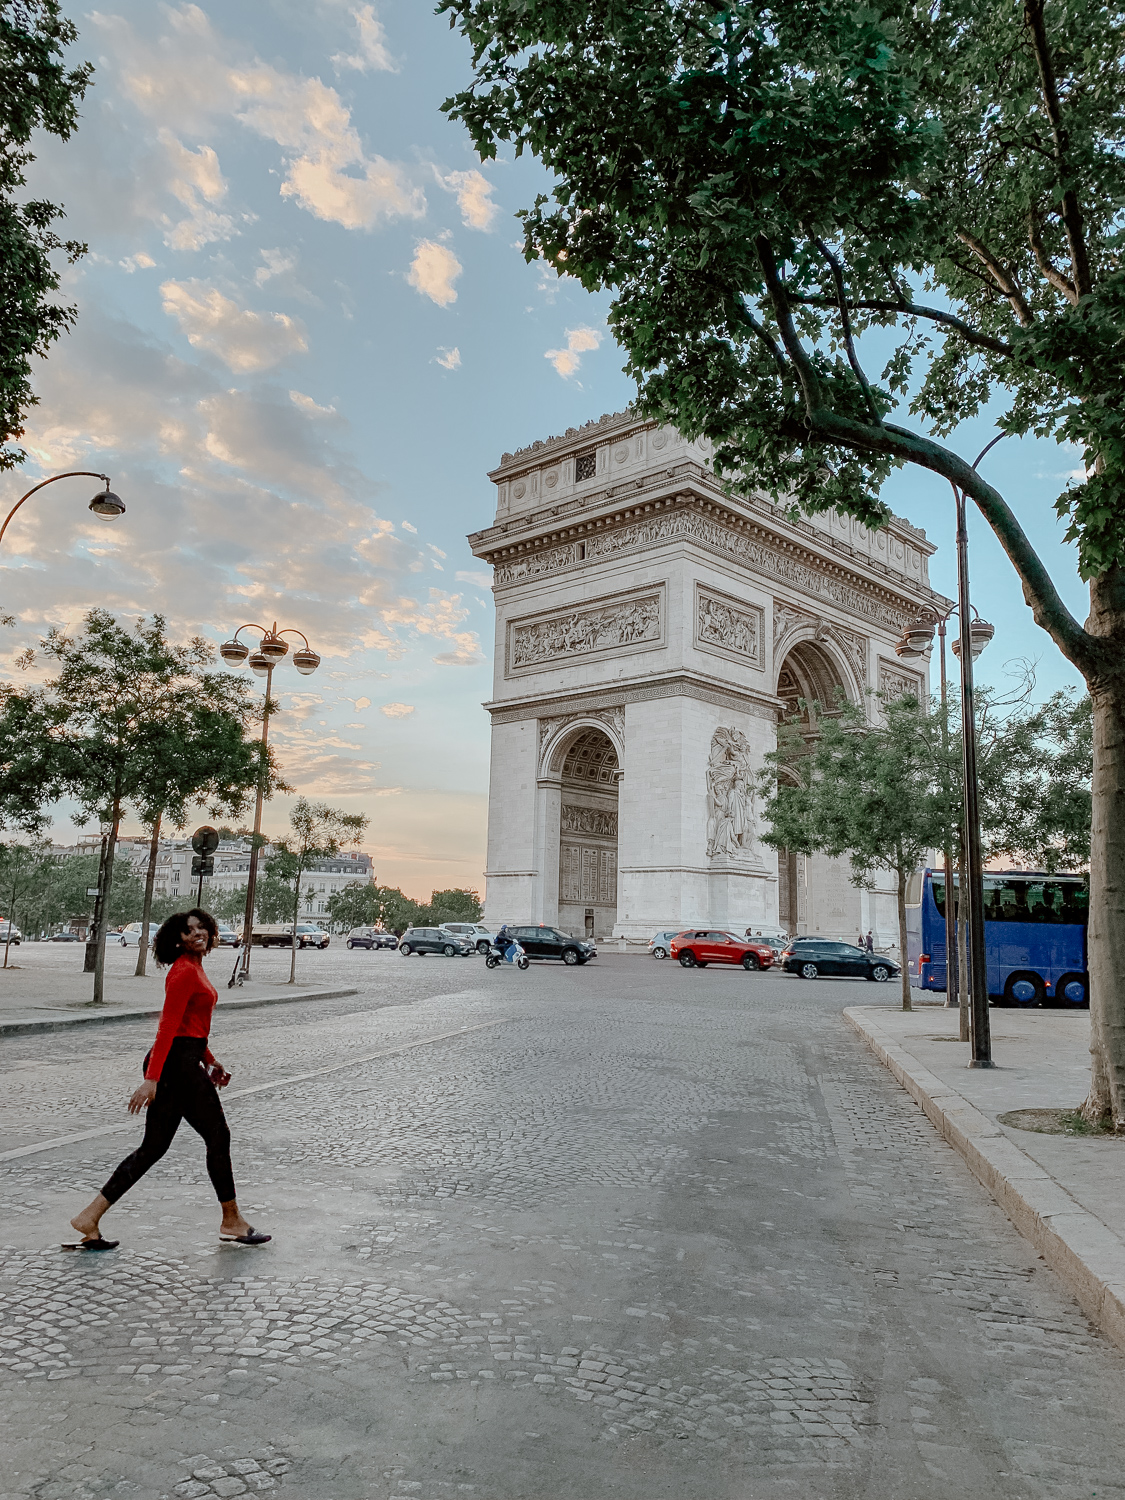 how to get to the arc de triomphe